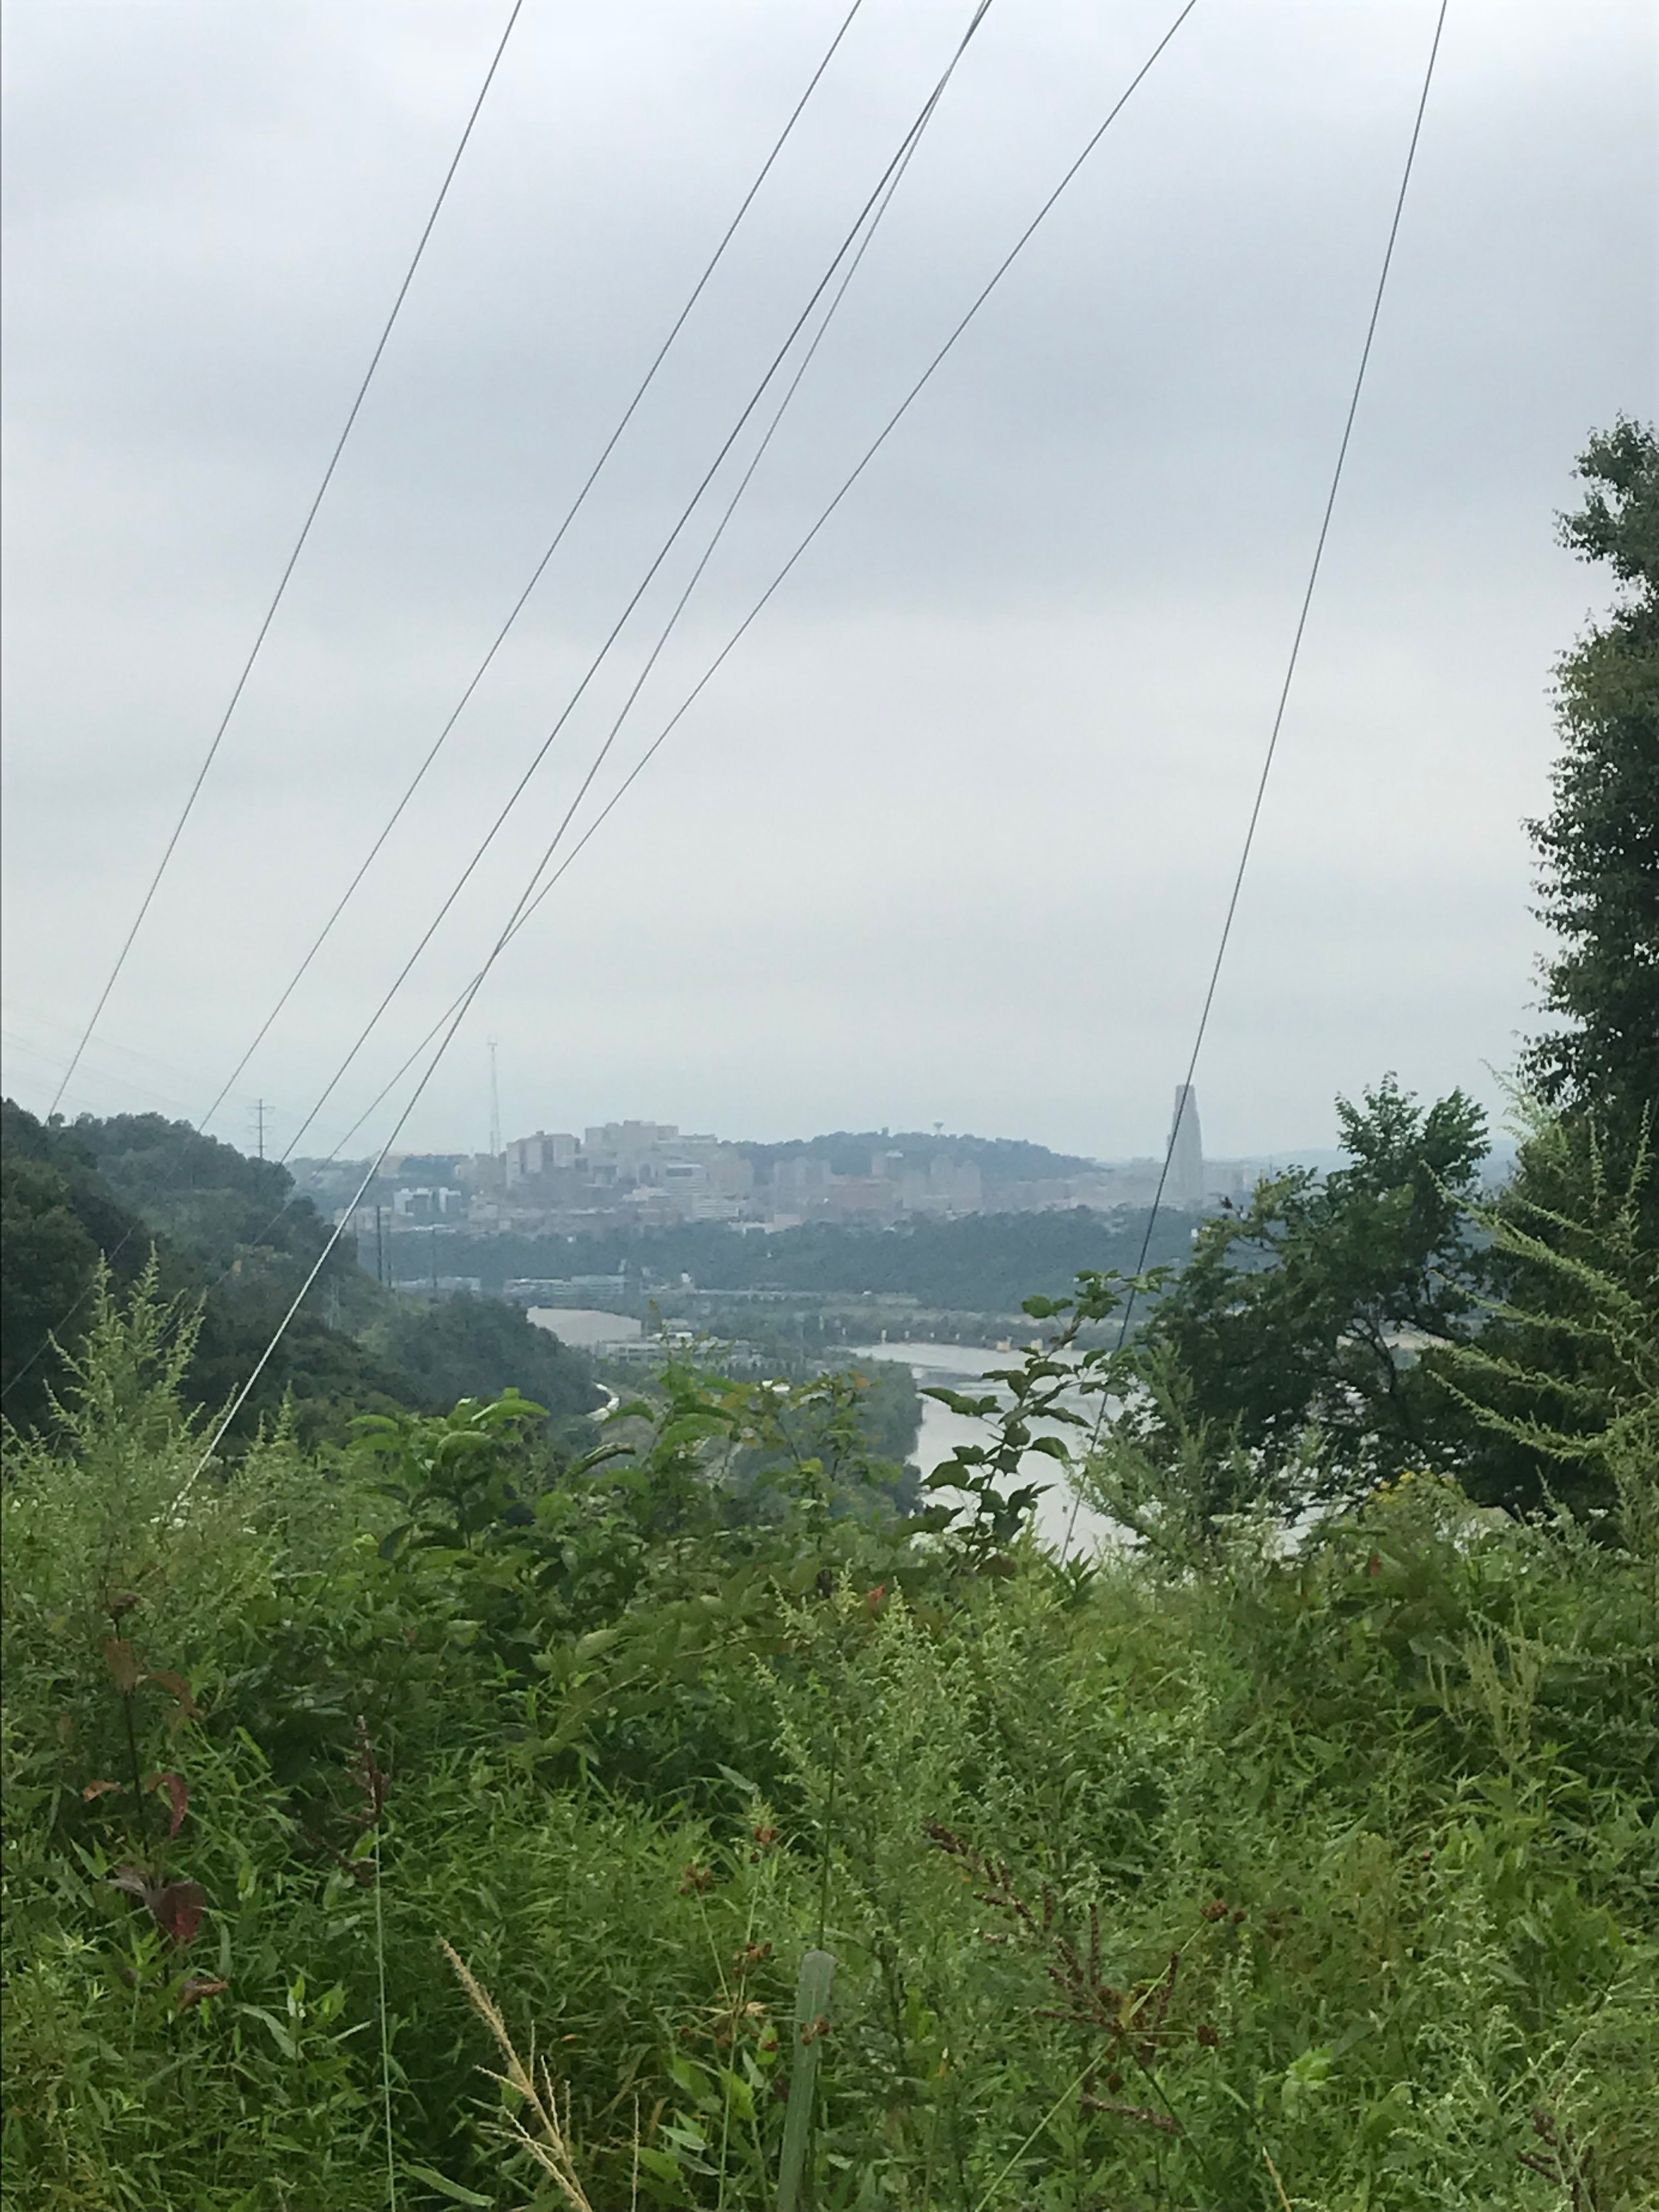 View from Hays Woods looking towards Oakland on the Monongahela River.